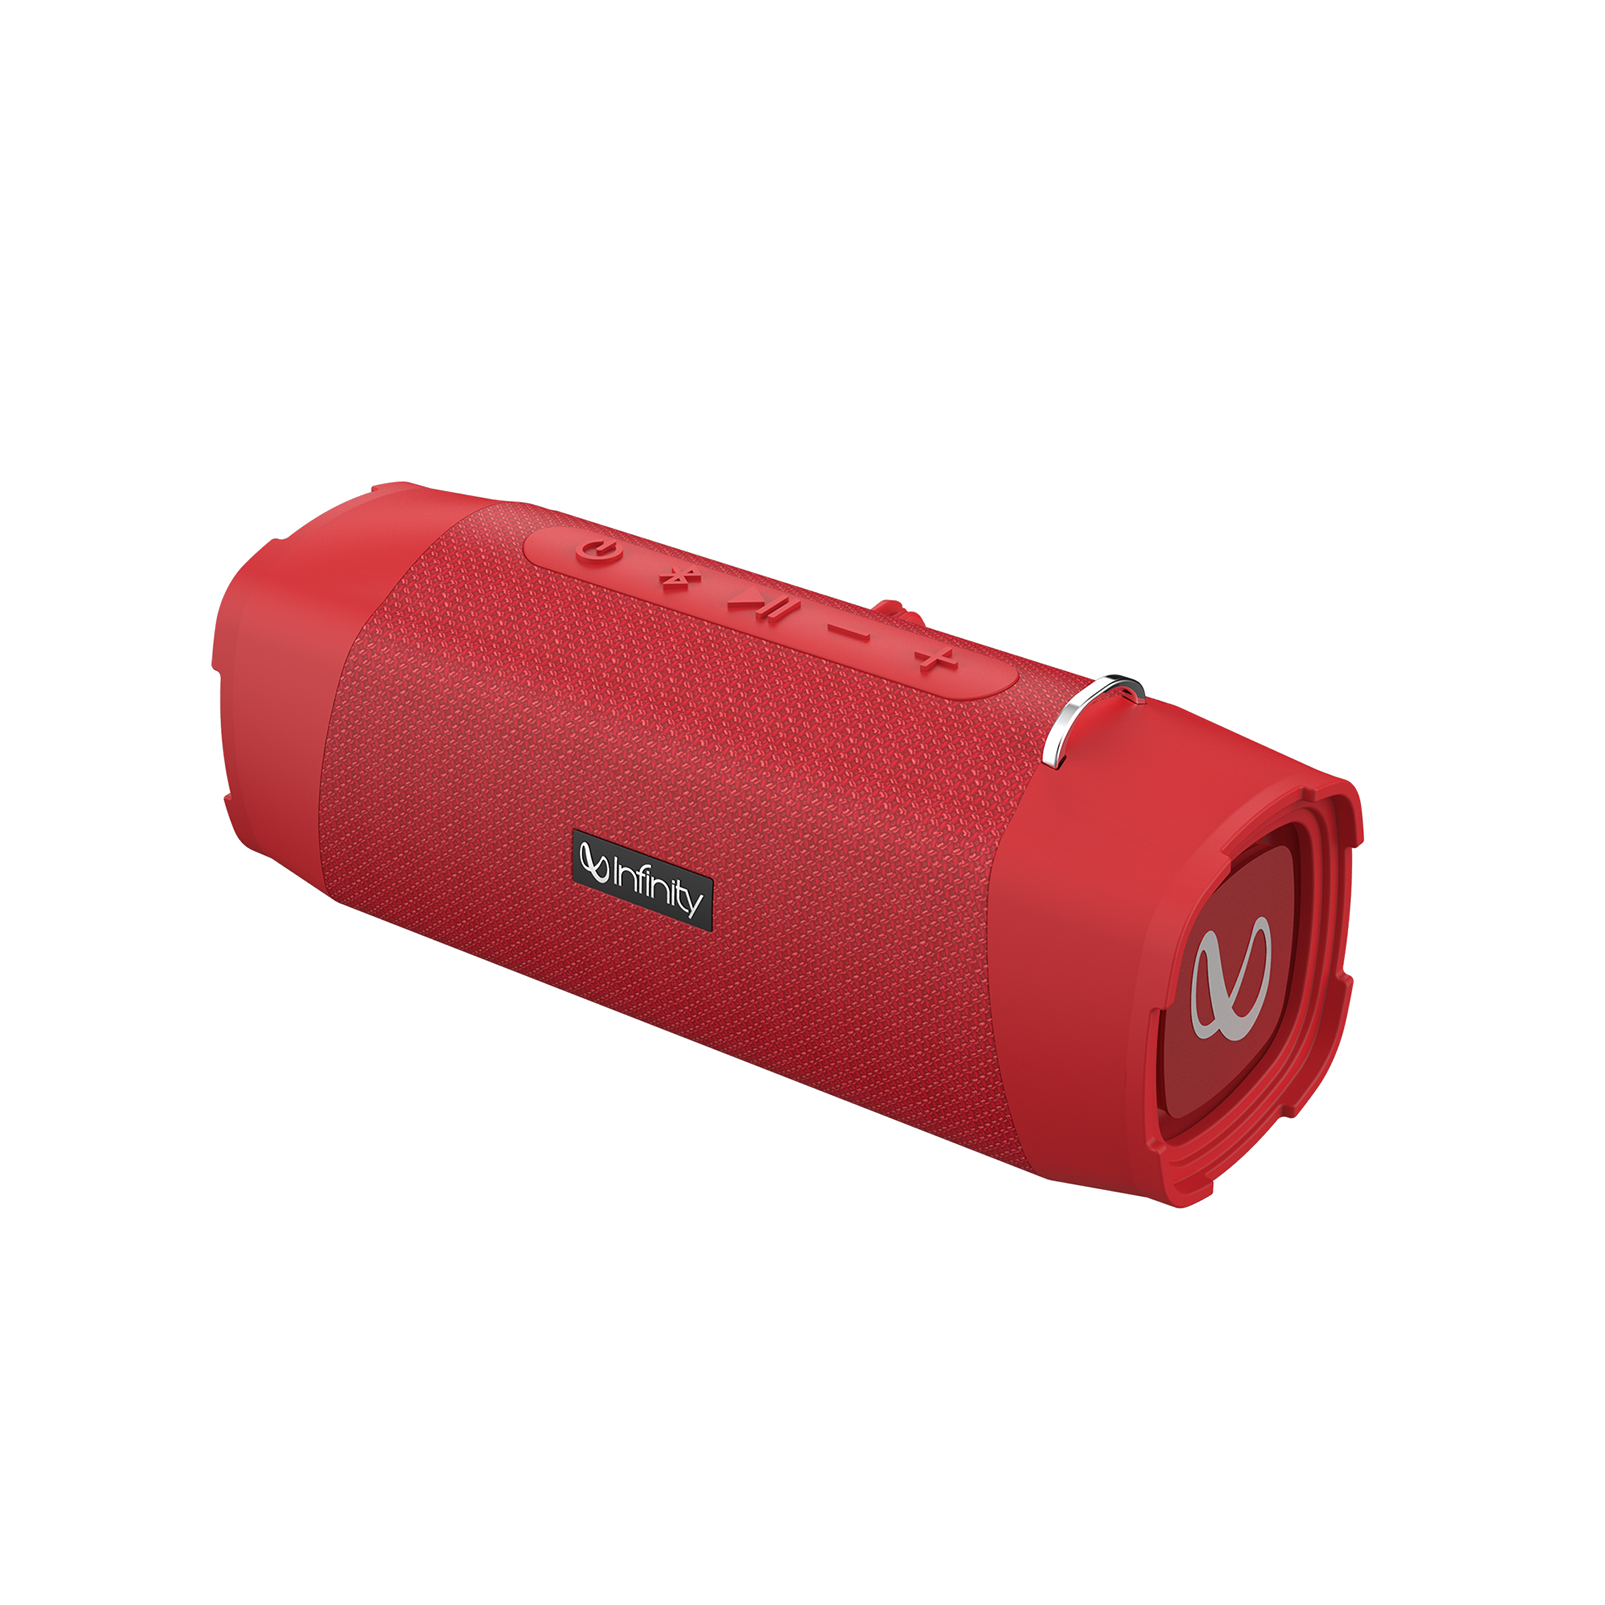 INFINITY FUZE 700 - Red - Portable Wireless Speakers - Front